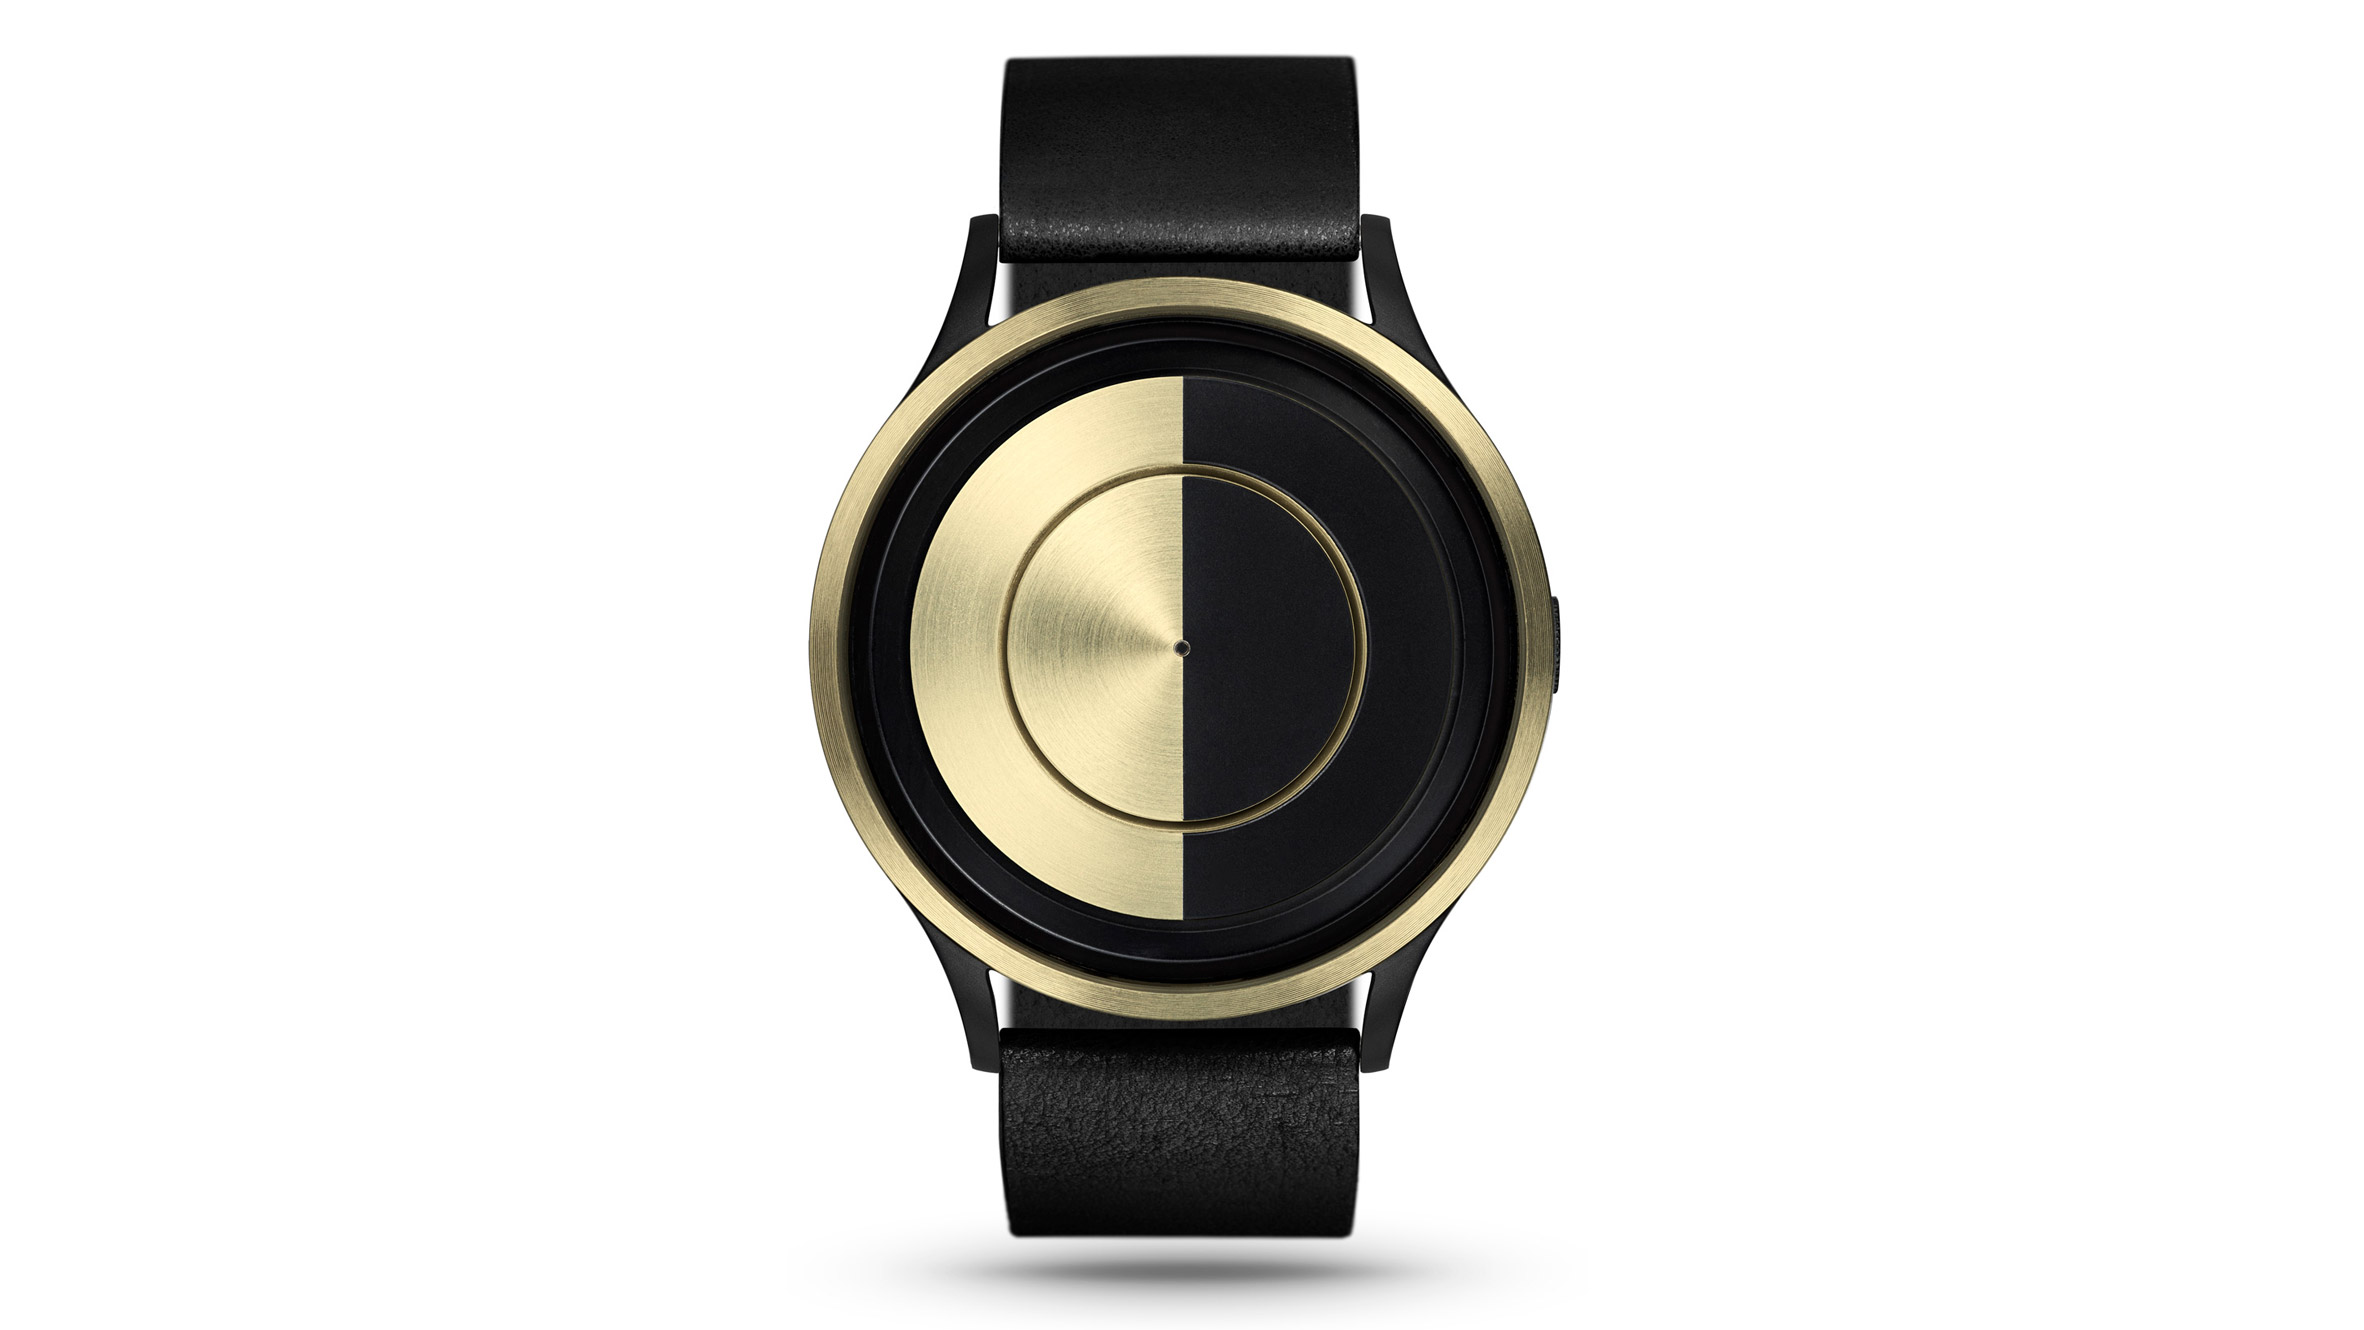 Ziiiro's latest watch is inspired by the phases of the moon